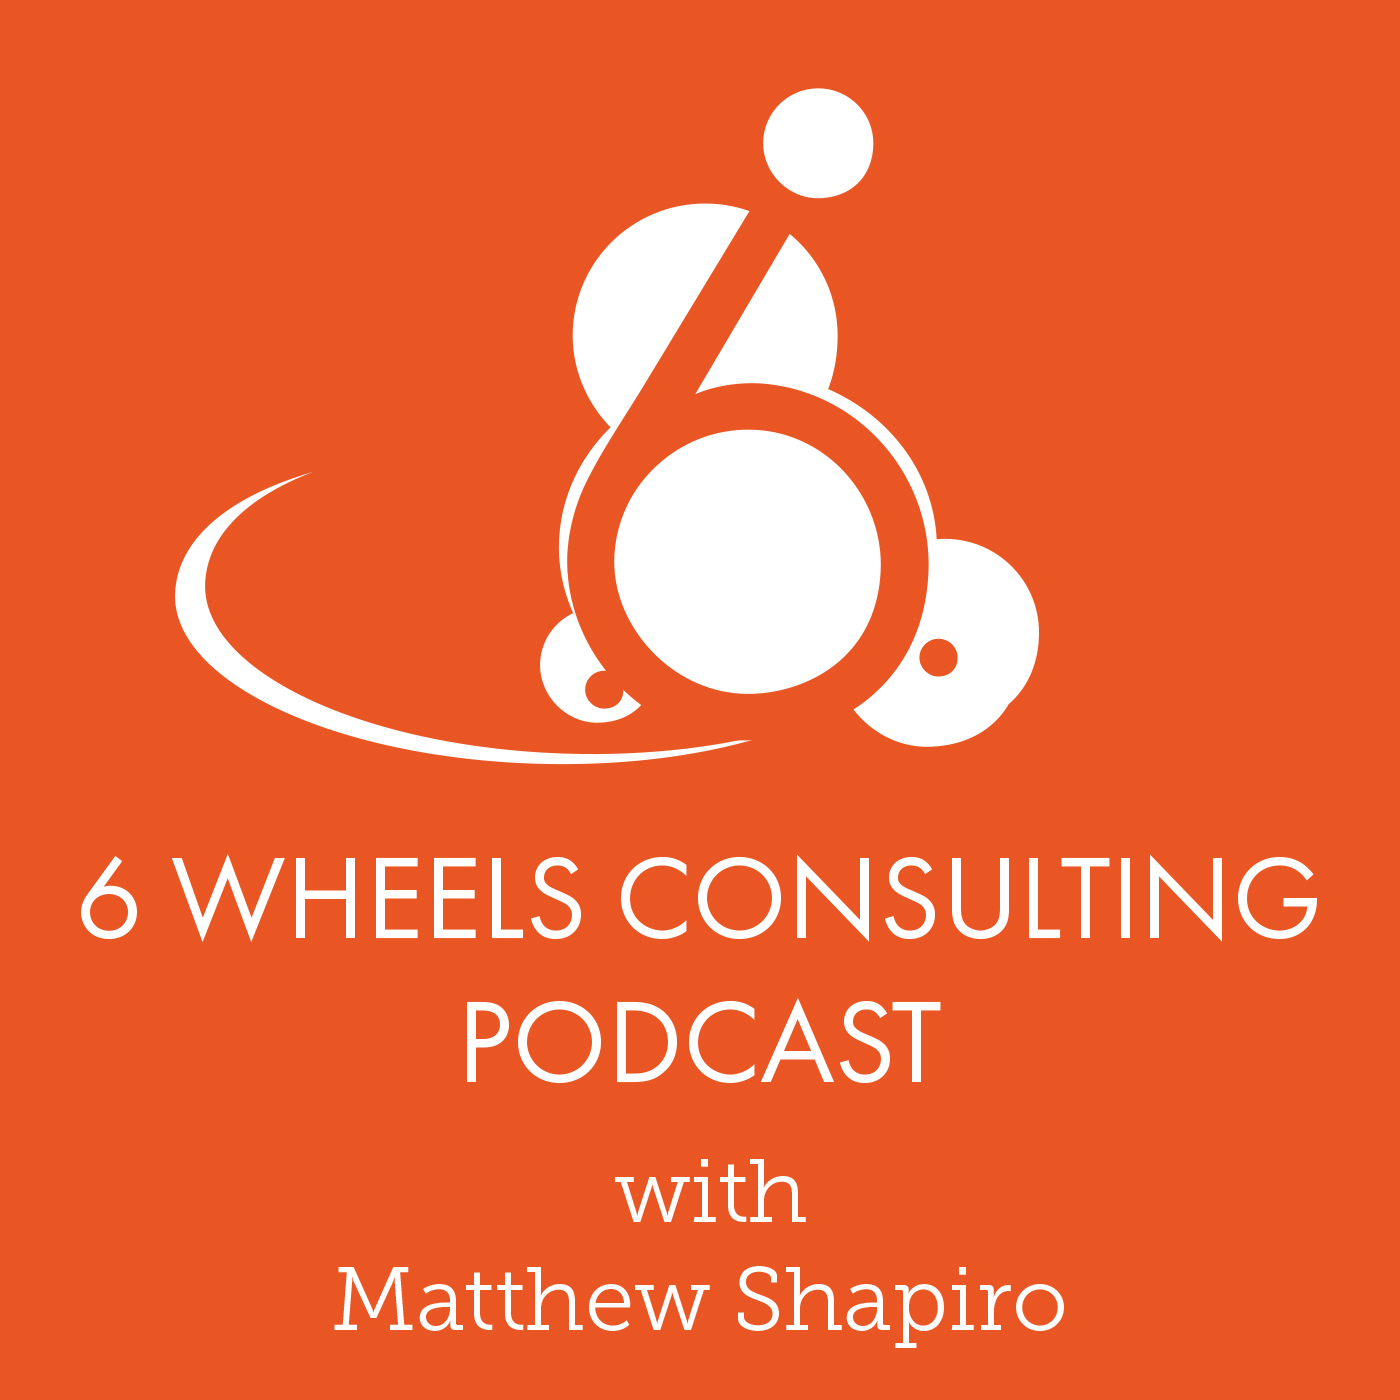 PHOTO: Here is the logo for the 6 Wheels Consulting Podcast. Is a white version of the six wheels logo on an orange background. The text reads 6 Wheels Podcast with Matthew Shapiro.